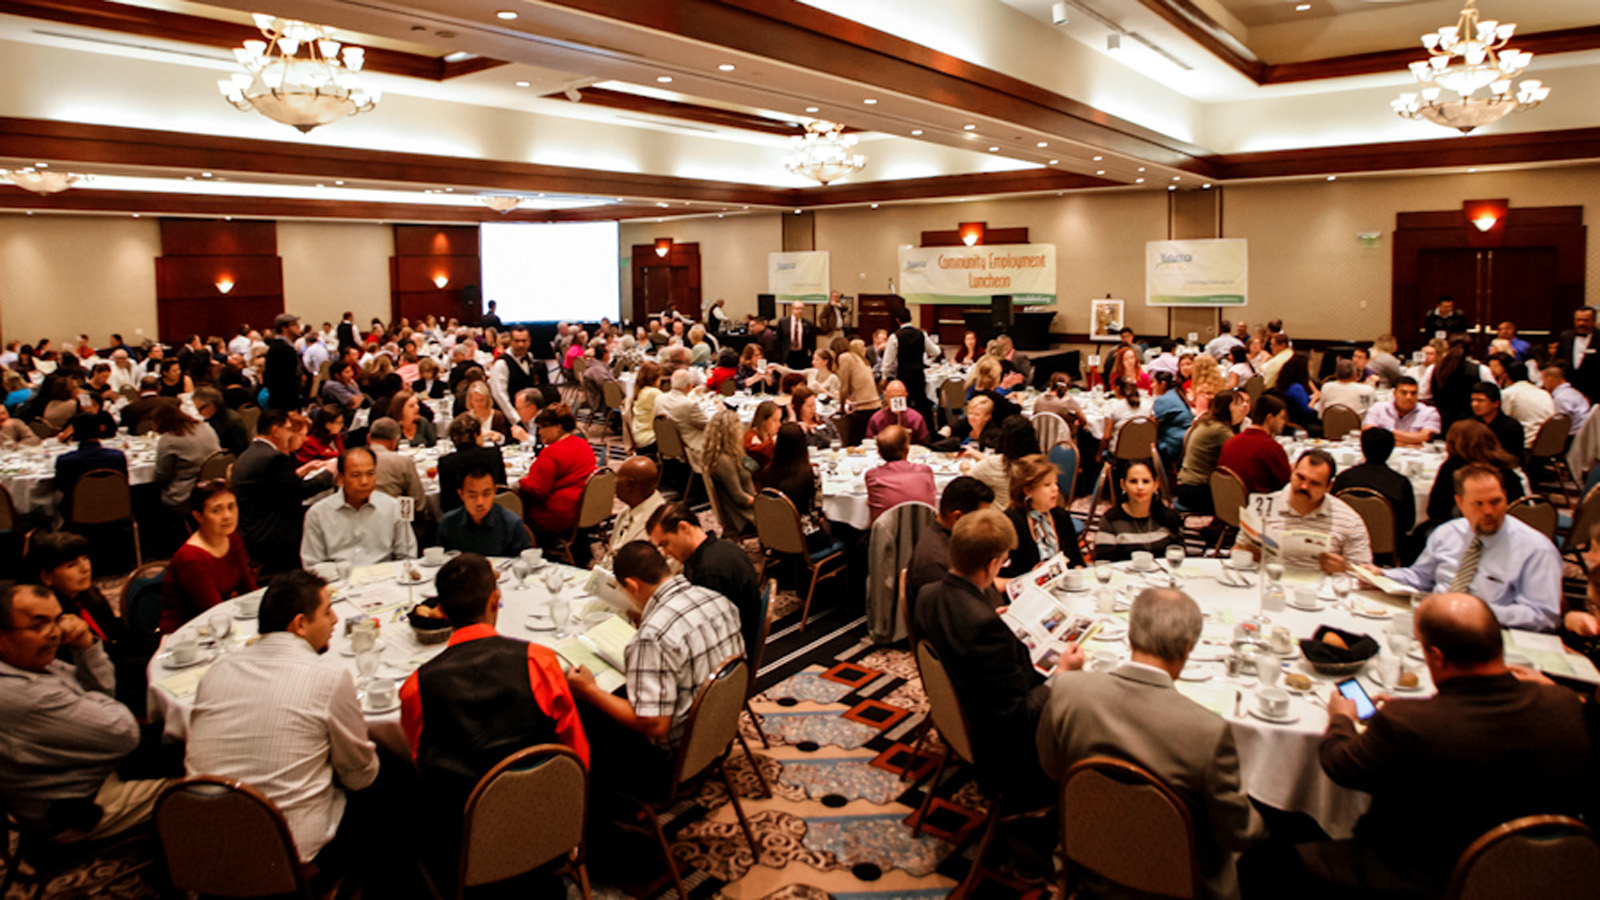 More than 300 people attended 2013 Community Employment Luncheon, honoring the employment partners of Tierra del Sol Foundation, Nov. 15 at the Woodland Hills Hilton.